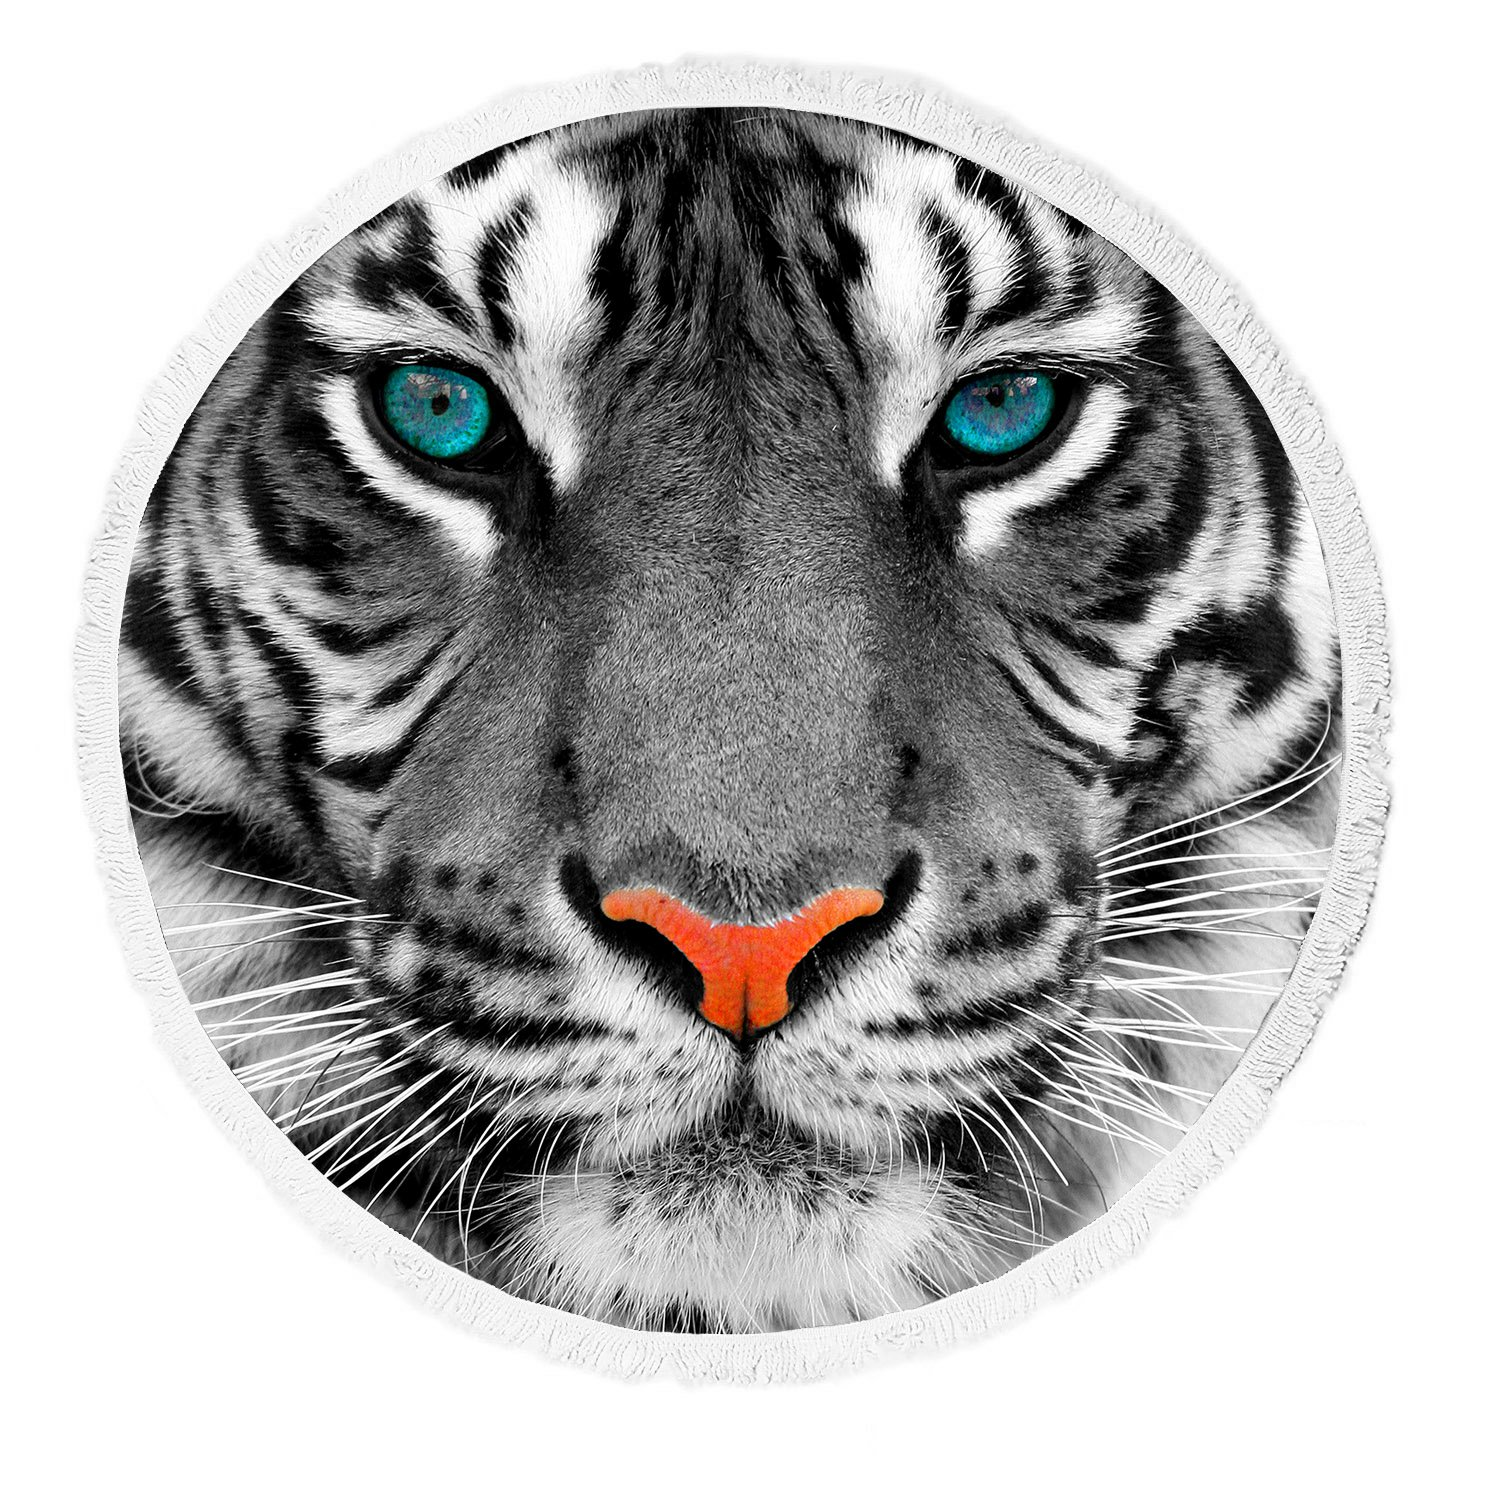 Yoga Towel Tiger: GCKG Animal Beach Towel, The Eyes Of White Tiger King